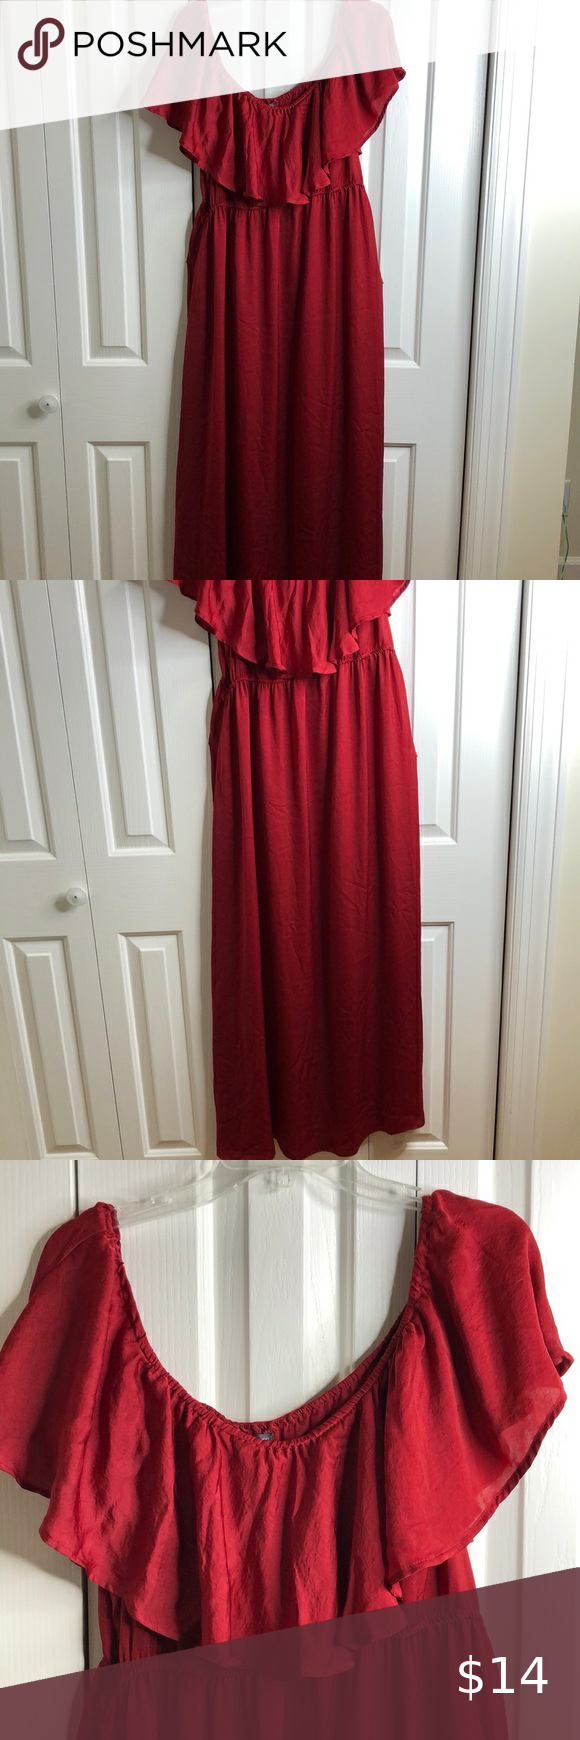 Shein Size 3x Red Off The Shoulder Maxi Dress Euc Maxi Dress Shoulder Maxi Dress Shein Dress [ 1740 x 580 Pixel ]